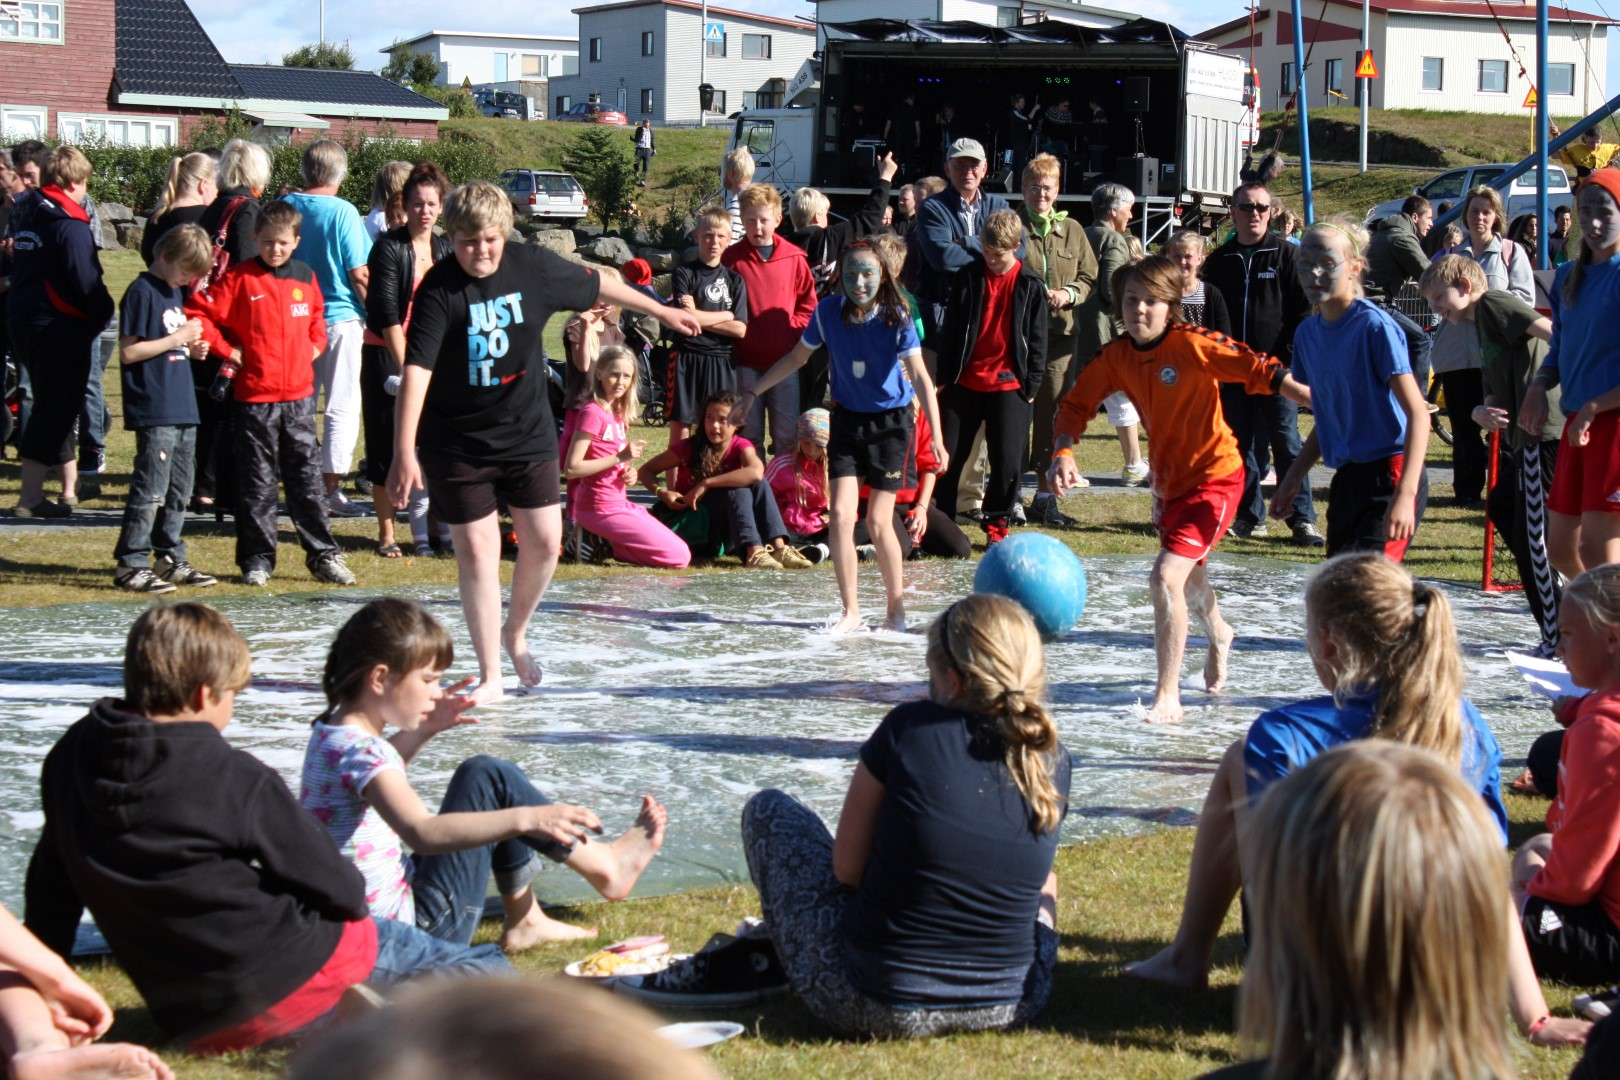 Family festival at Vogar in Reykjanes